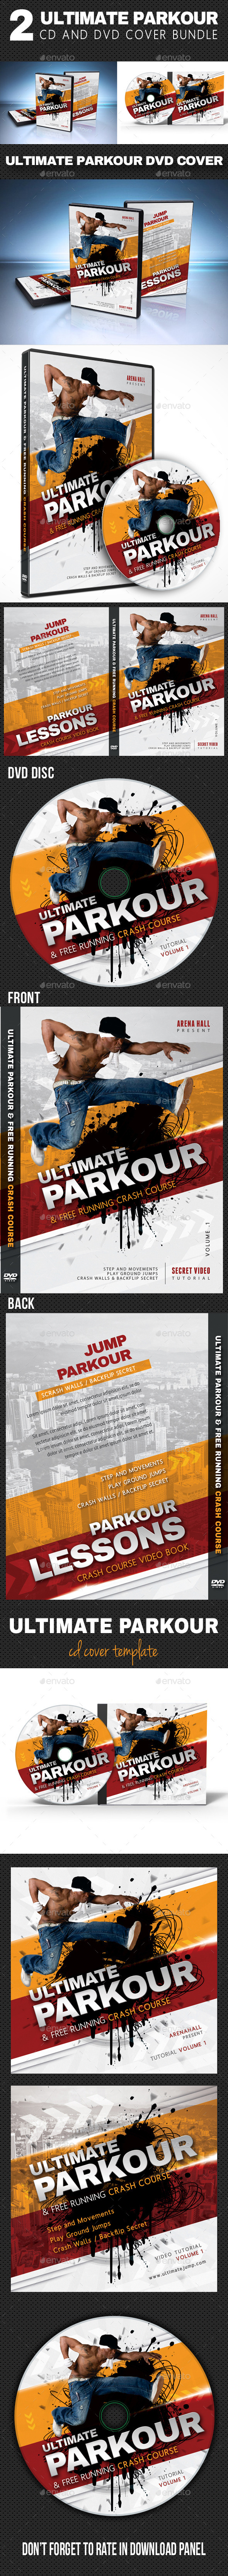 GraphicRiver 2 in 1 Ultimate Parkour CD and DVD Cover Bundle 10797808